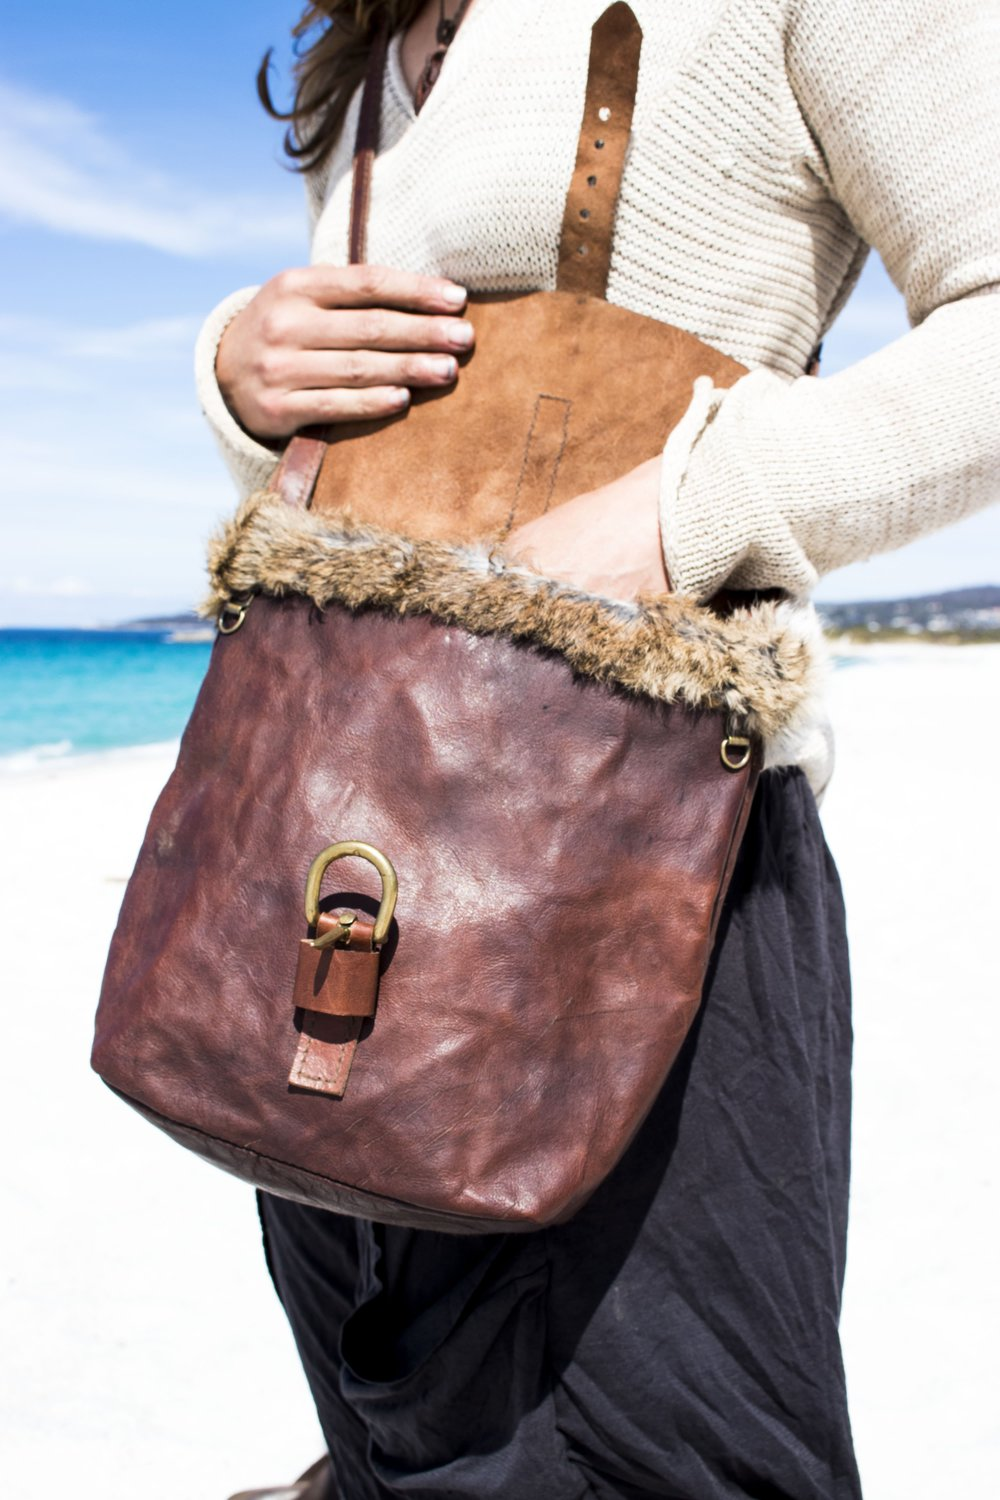 Picture: Using the kangaroo leather that Josh produces at his Tannery in the Yarra Valley (where this workshop will be held), Kirsty Button commissioned Josh to produce this bag with her. *Fur is roadkill rabbit.